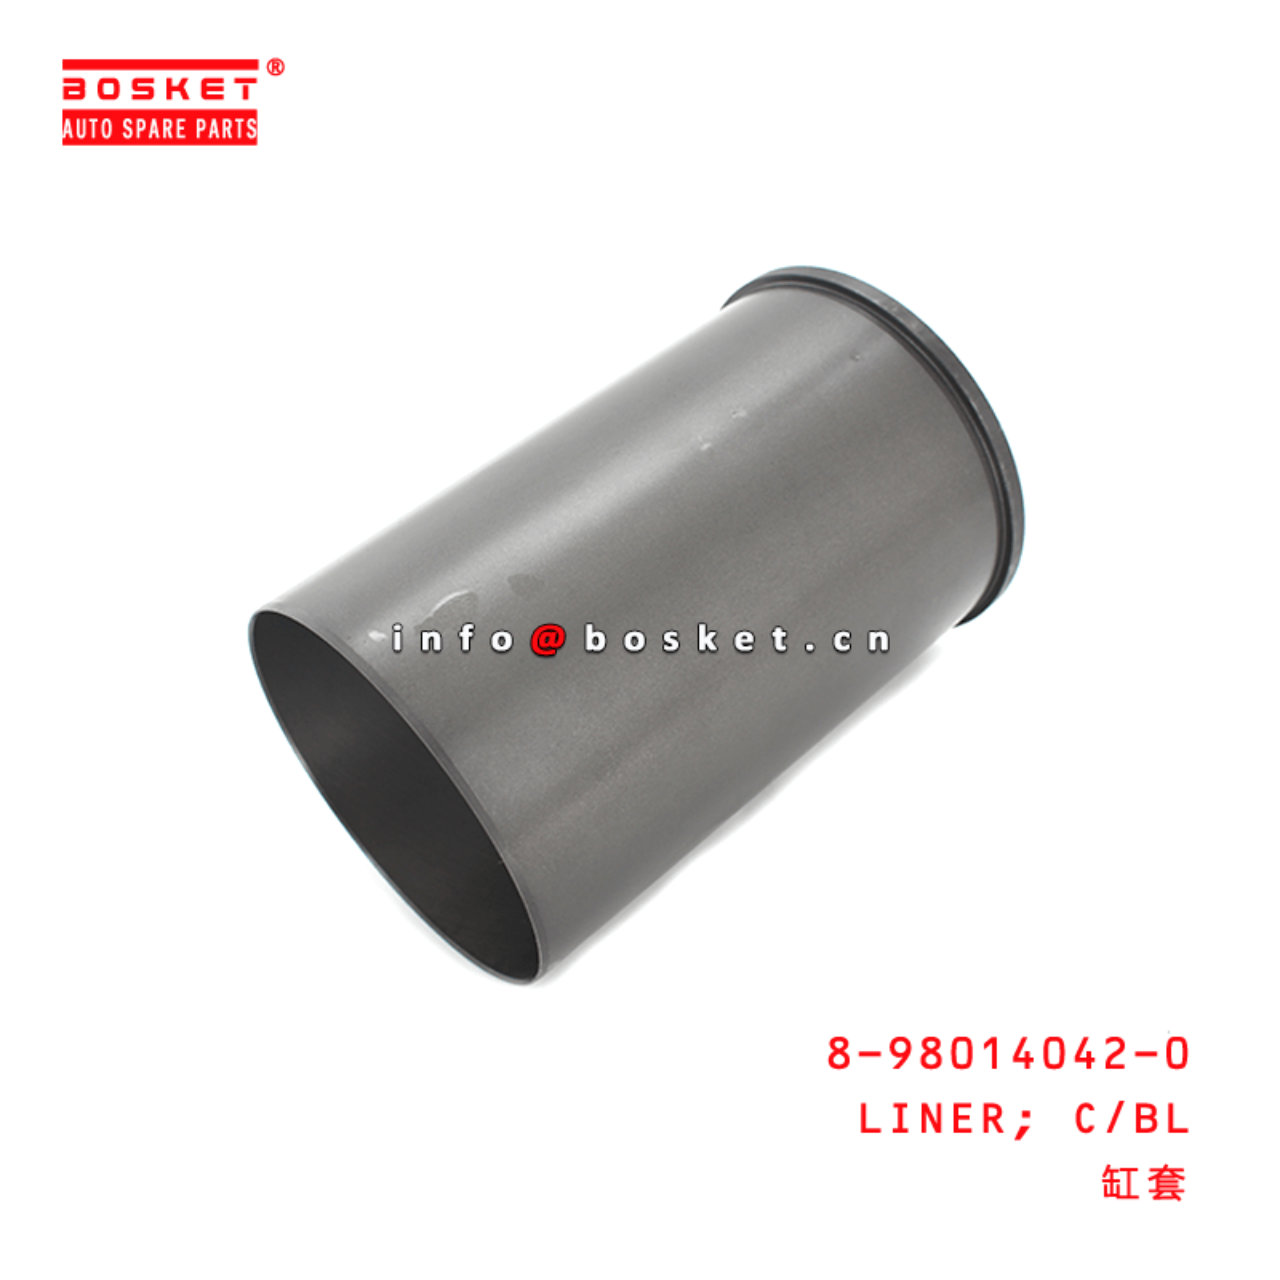 8-98014042-0 Cylinder Block Liner 8980140420 Suitable for ISUZU FRR FSR 4HL1 6HL1